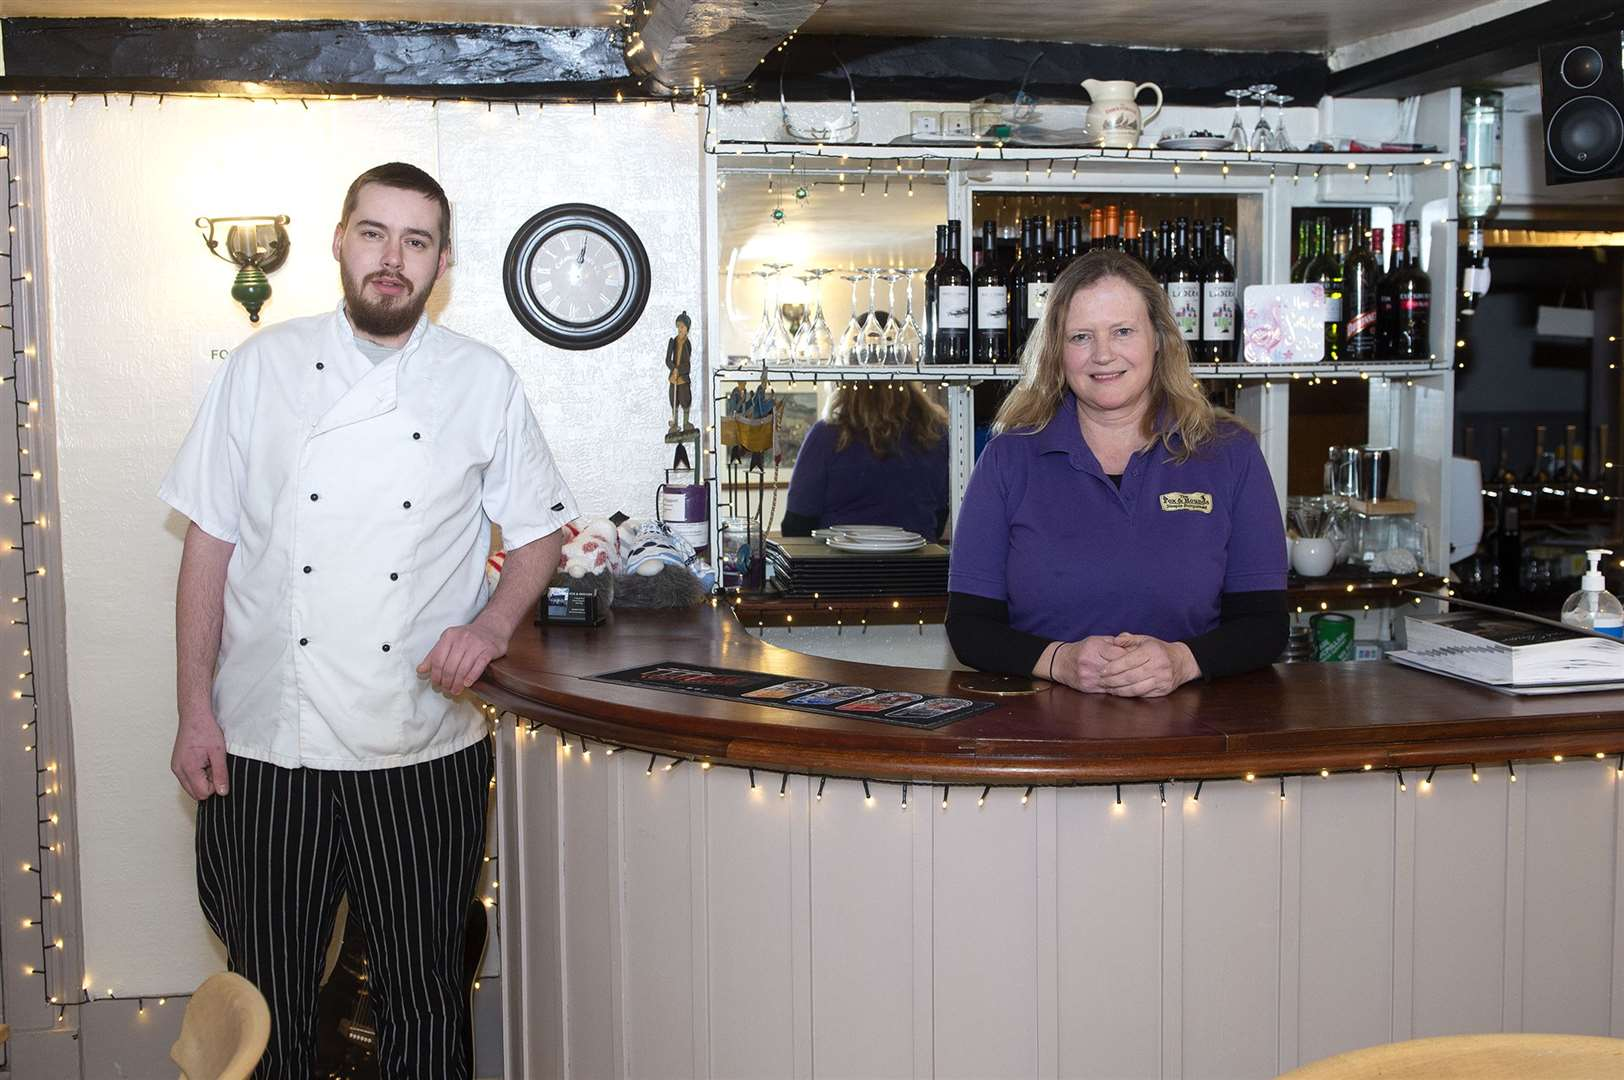 The Fox and Hounds owner Kate Irwin along with head chef David Jackson. Picture by Mecha Morton